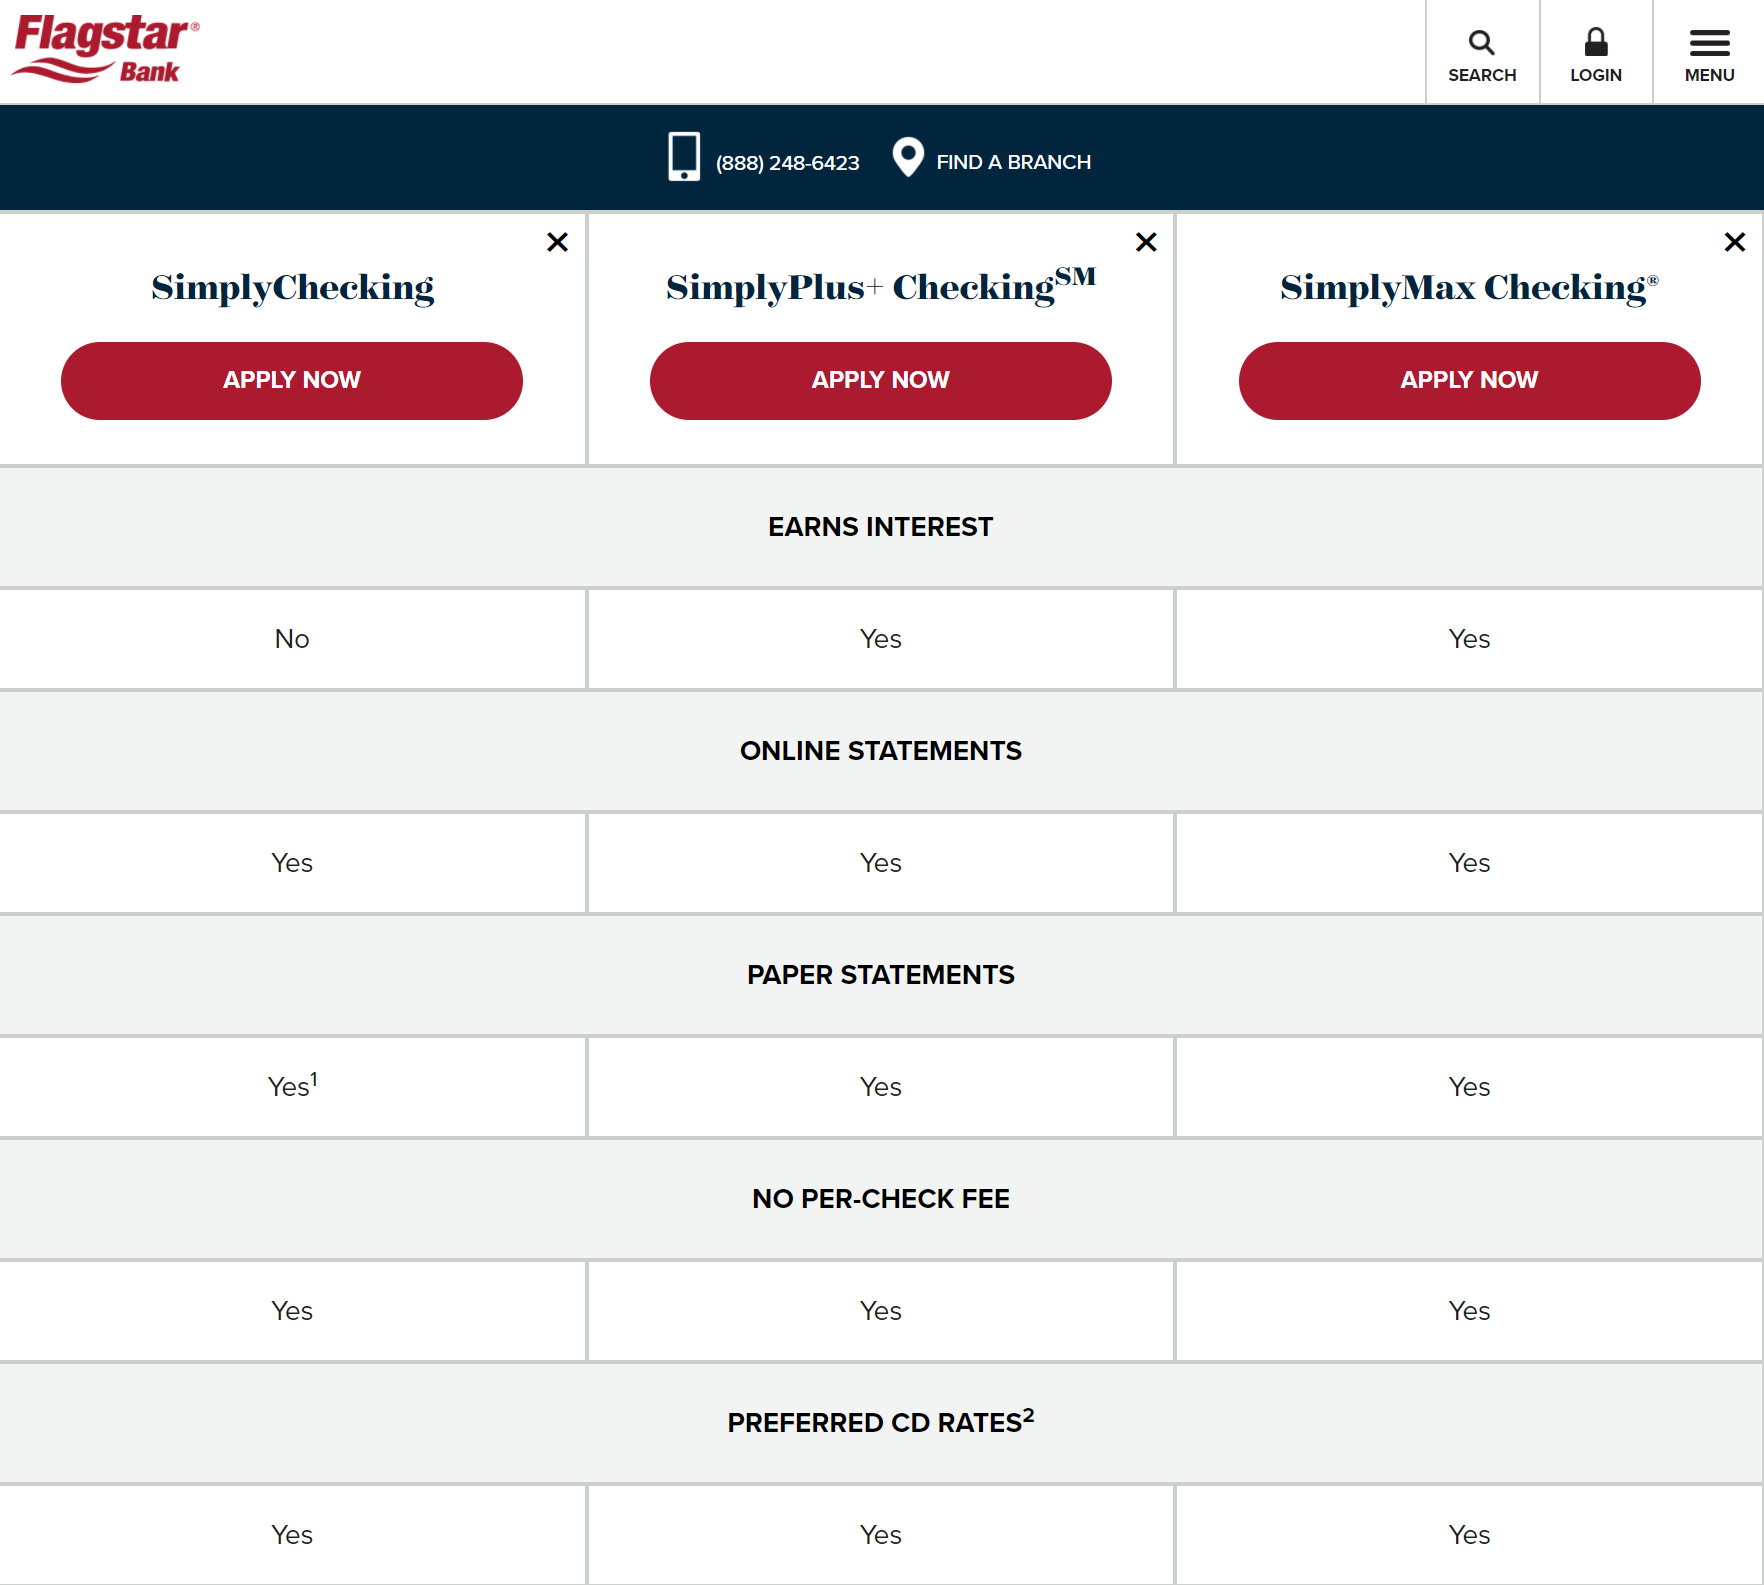 Flagstar product comparison table